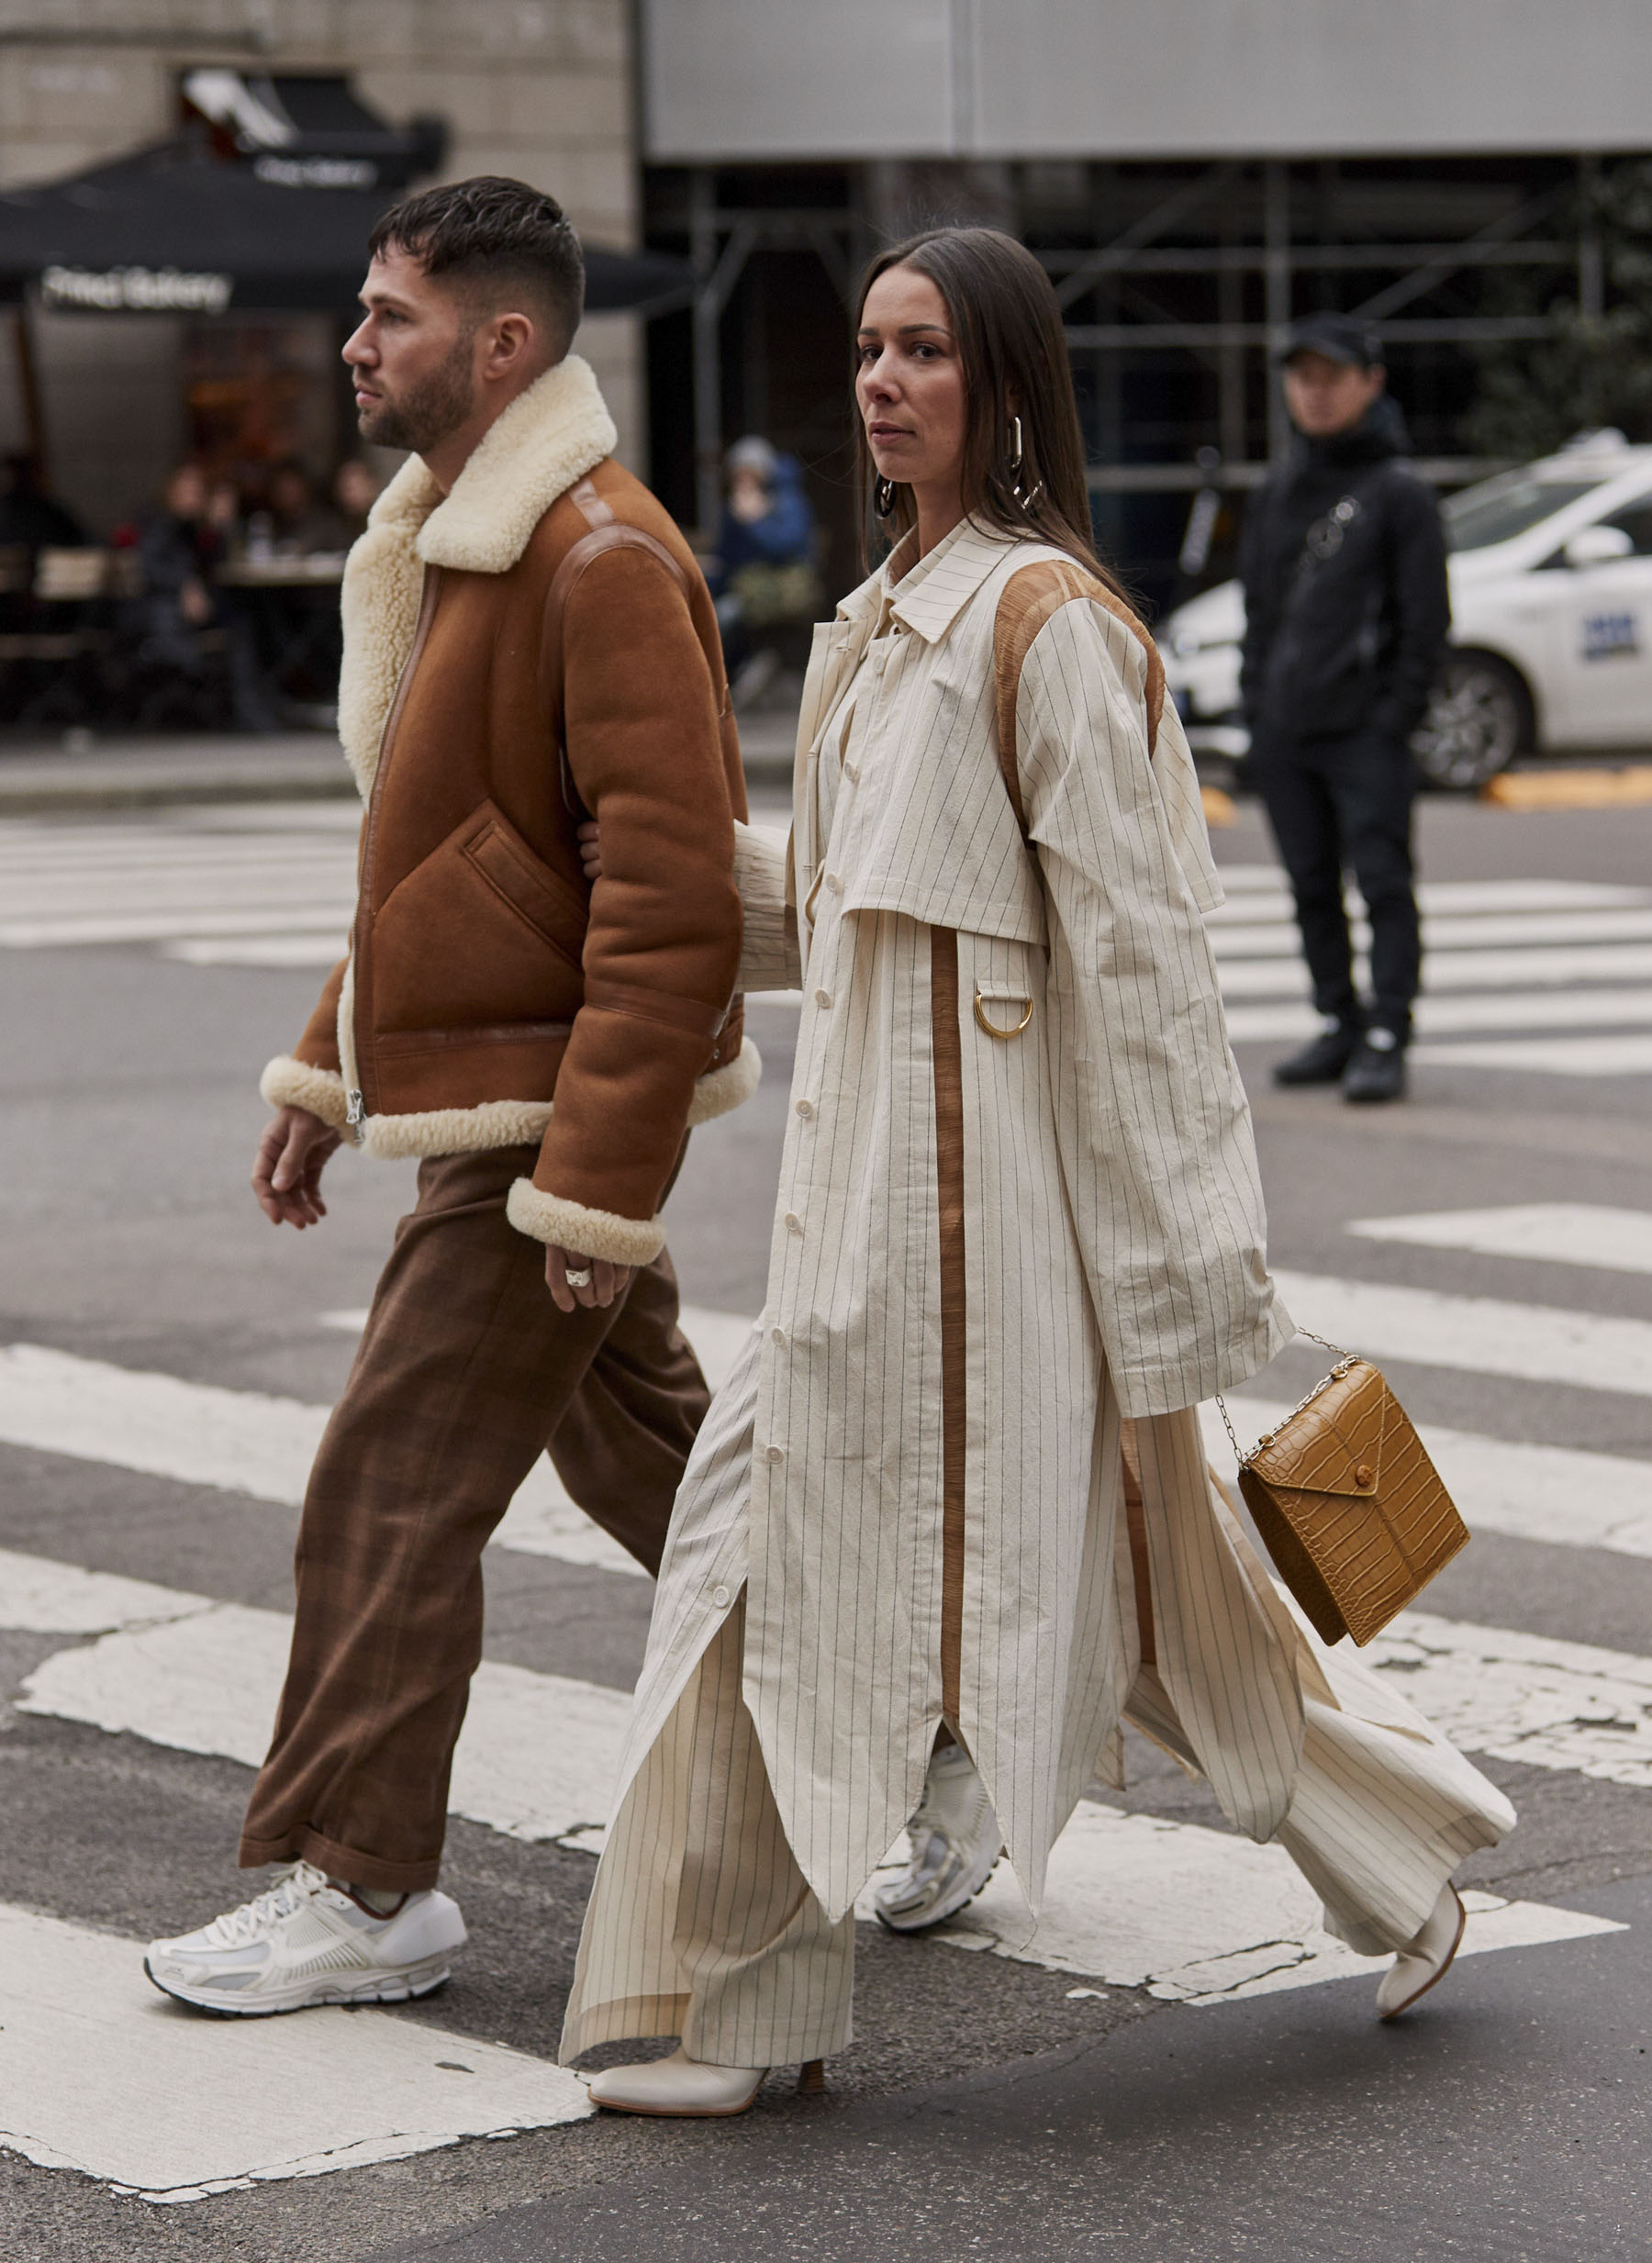 street style fashion week couple 2 goals